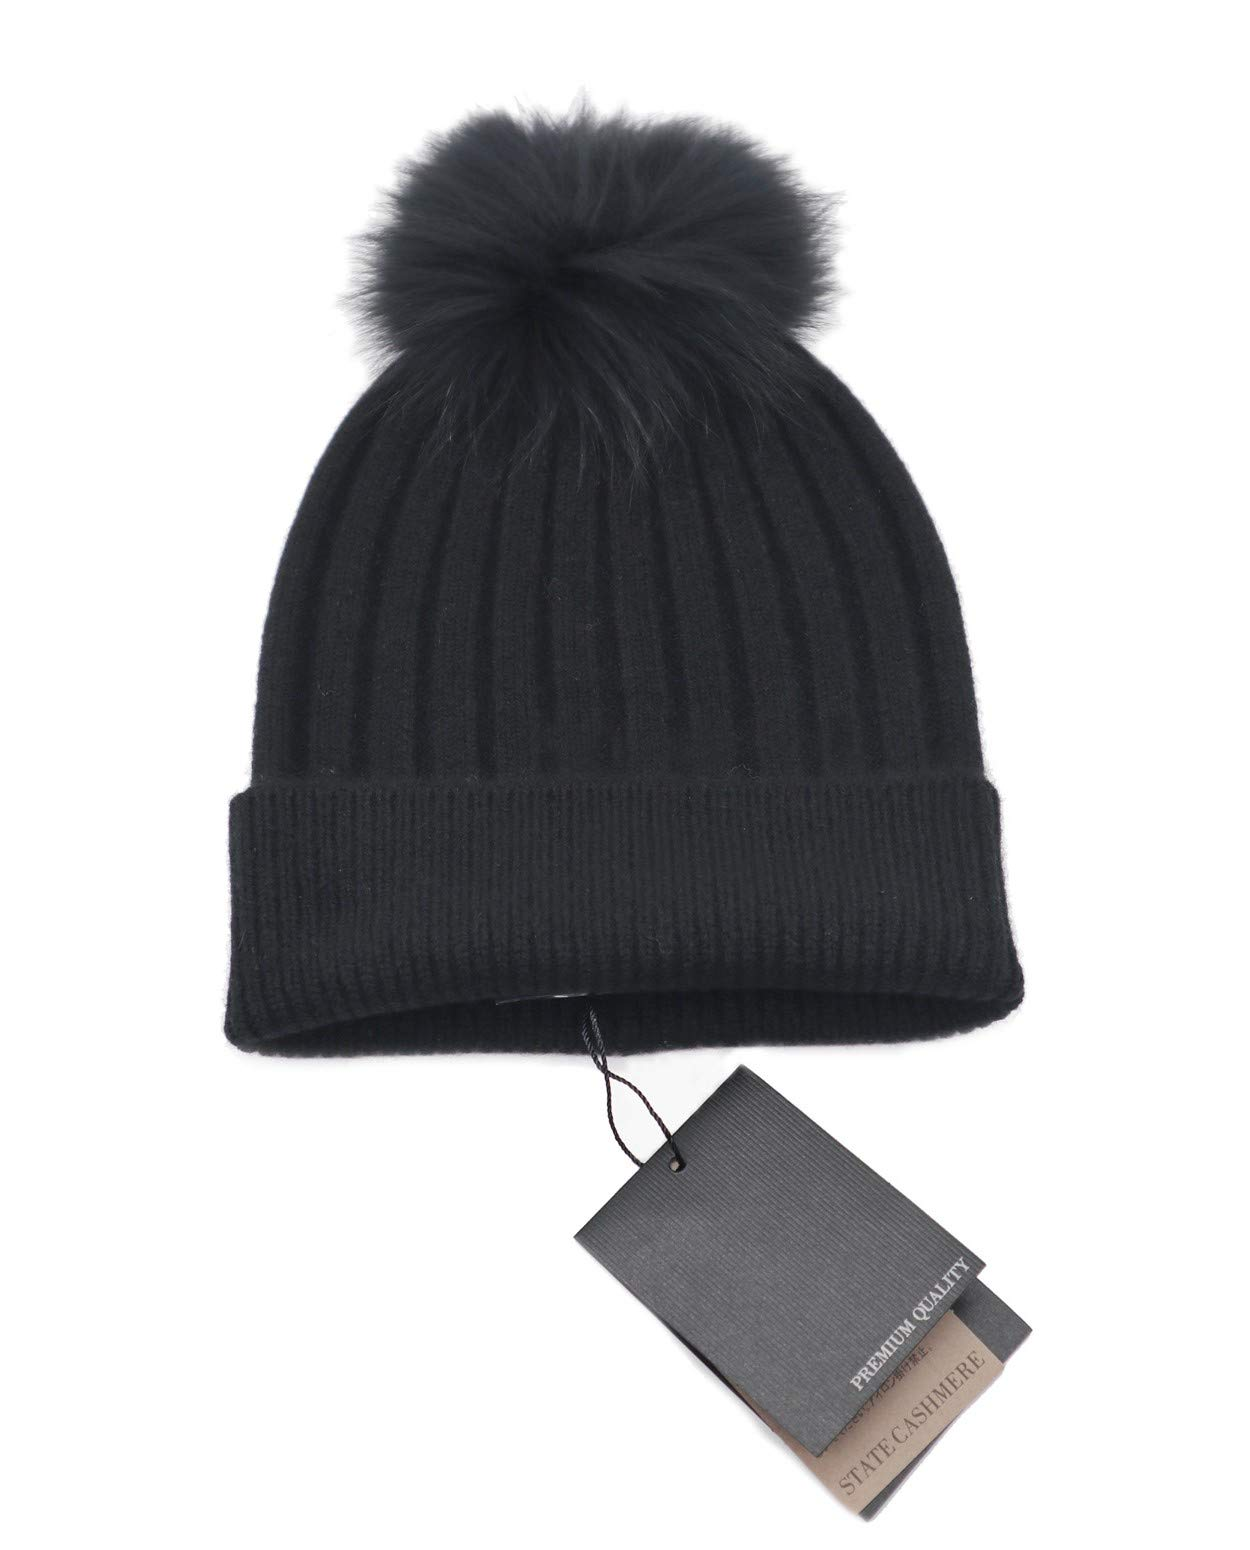 State Cashmere Real Fur Pom-Pom Hat 100% Pure Cashmere Cuffed Beanie•Ultimately Soft and Warm (Black) by State Cashmere